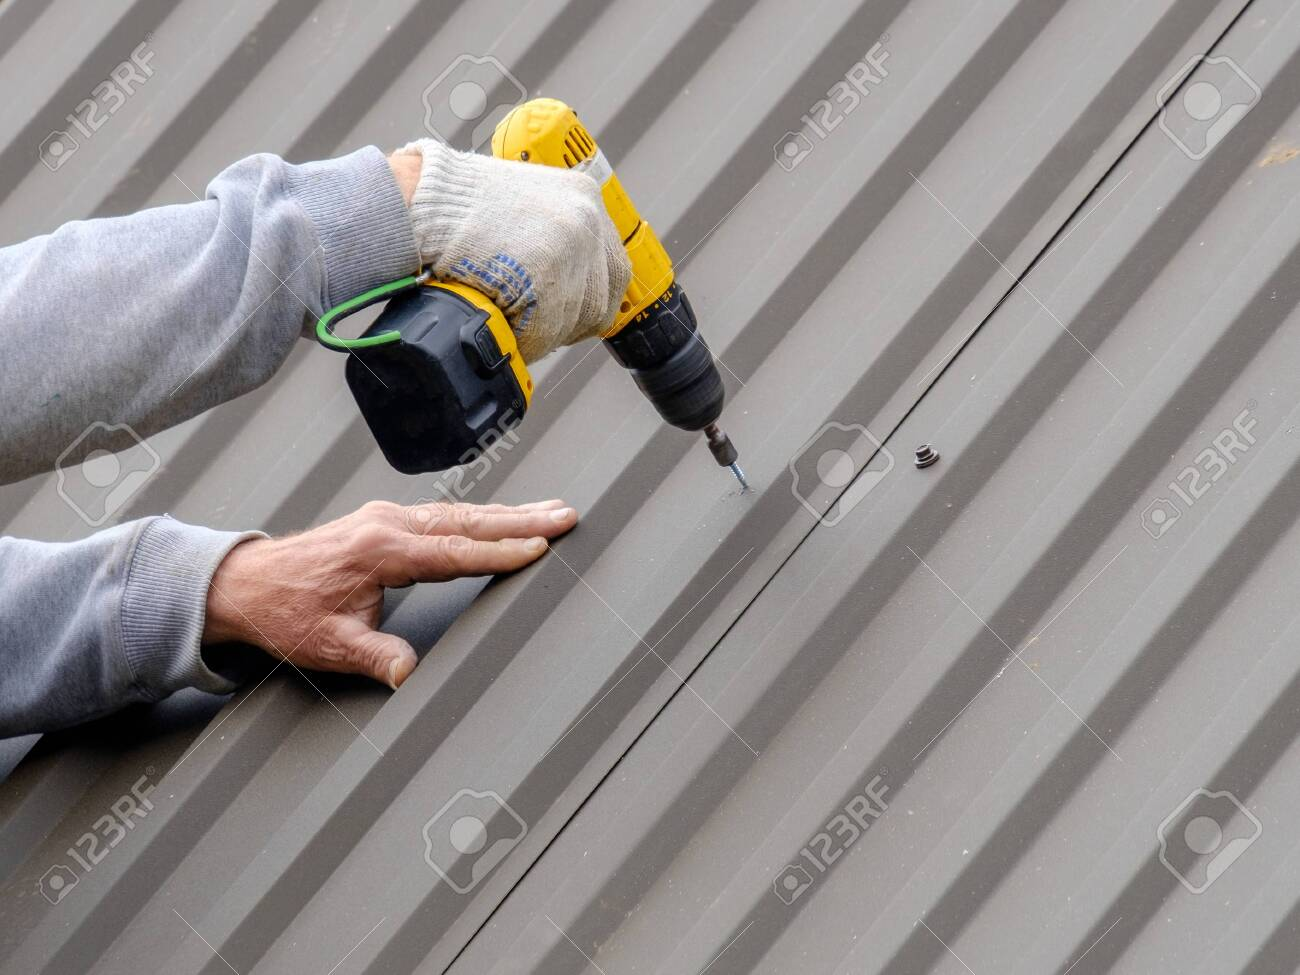 Men's hands in work gloves with a yellow screwdriver screw the roofing sheet to the roof of a country house. Cordless drill. The use of electrical engineering and technology. - 146576913